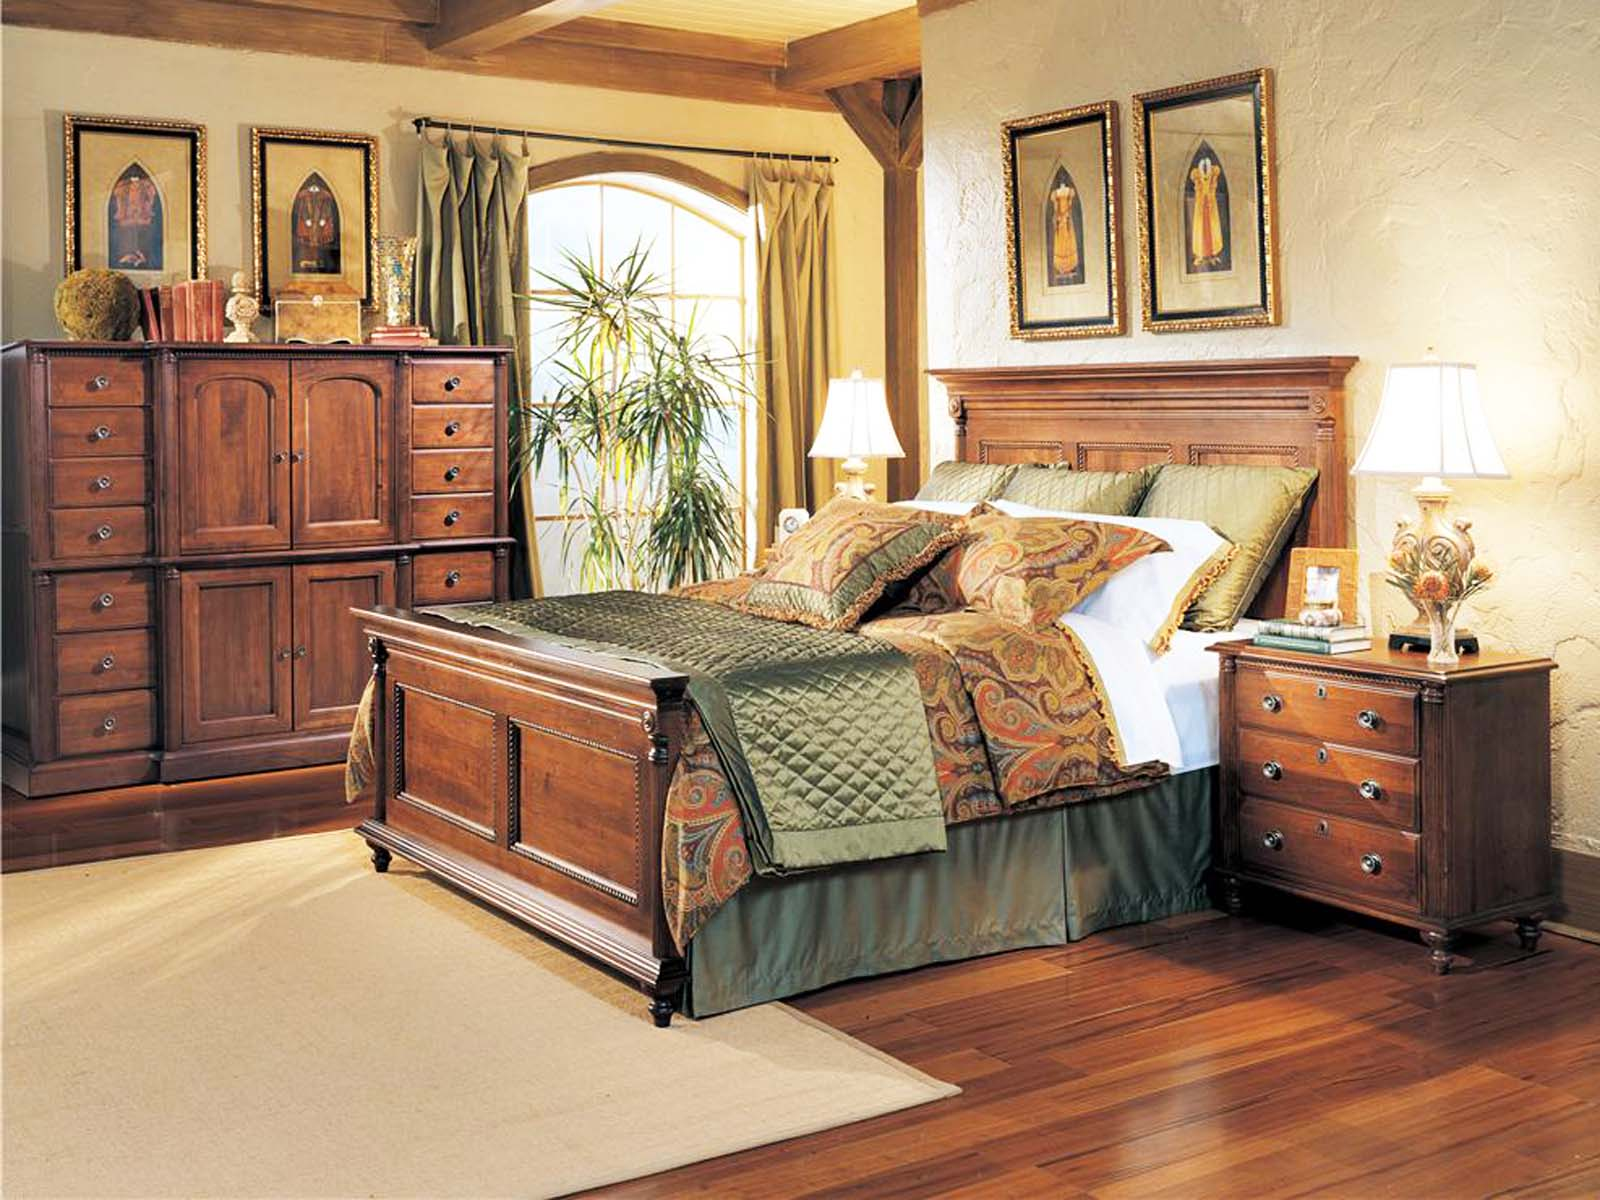 8300 King Bedroom Sets Furniture Row New HD